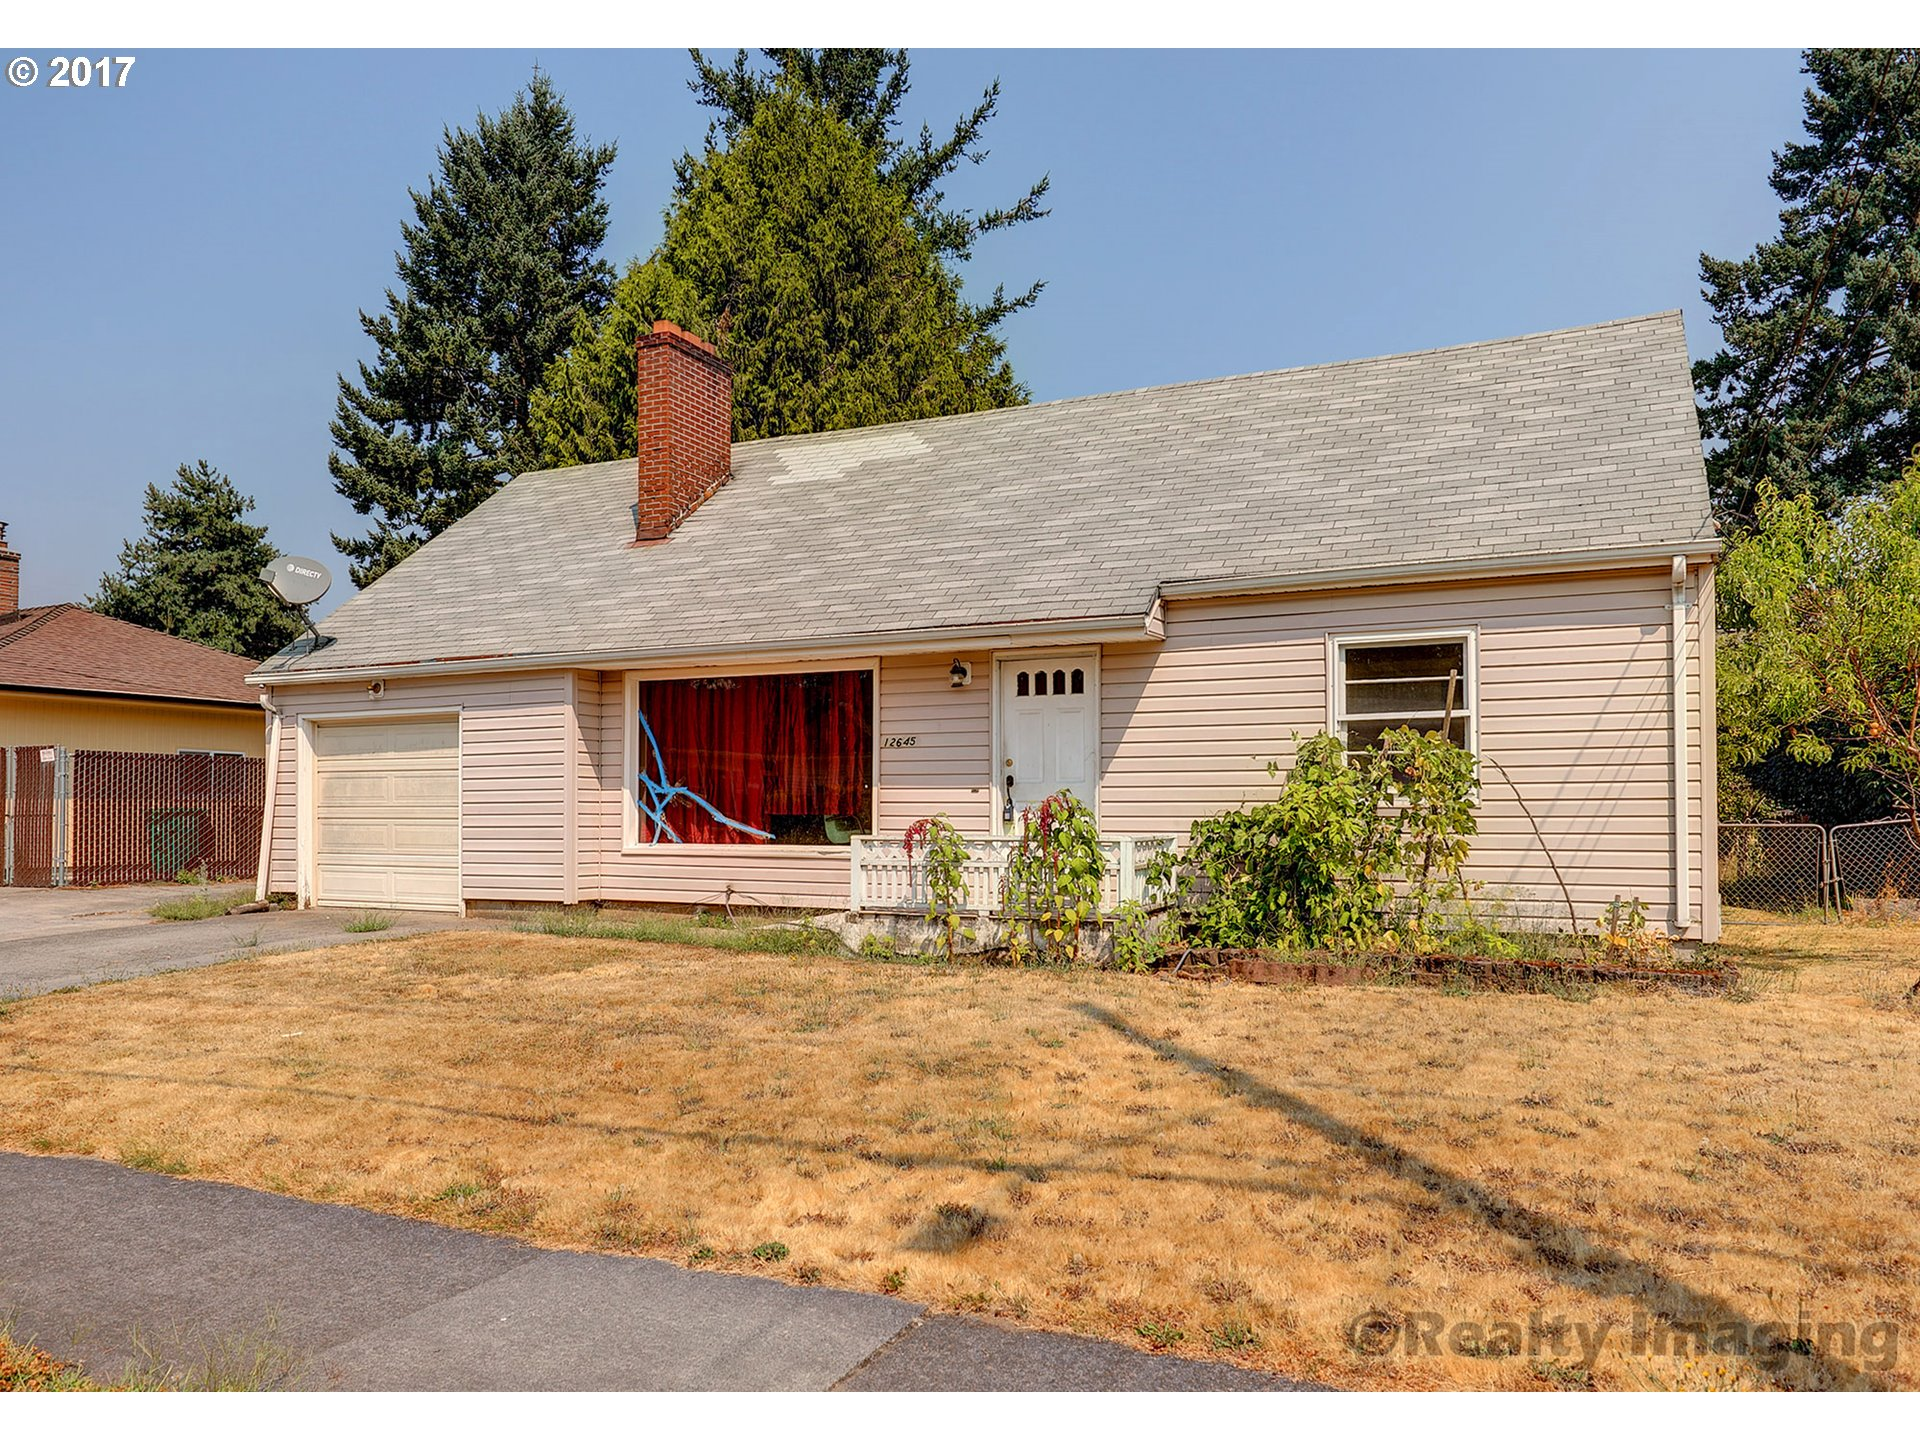 1906 sq. ft 3 bedrooms 3 bathrooms  House , Portland, OR